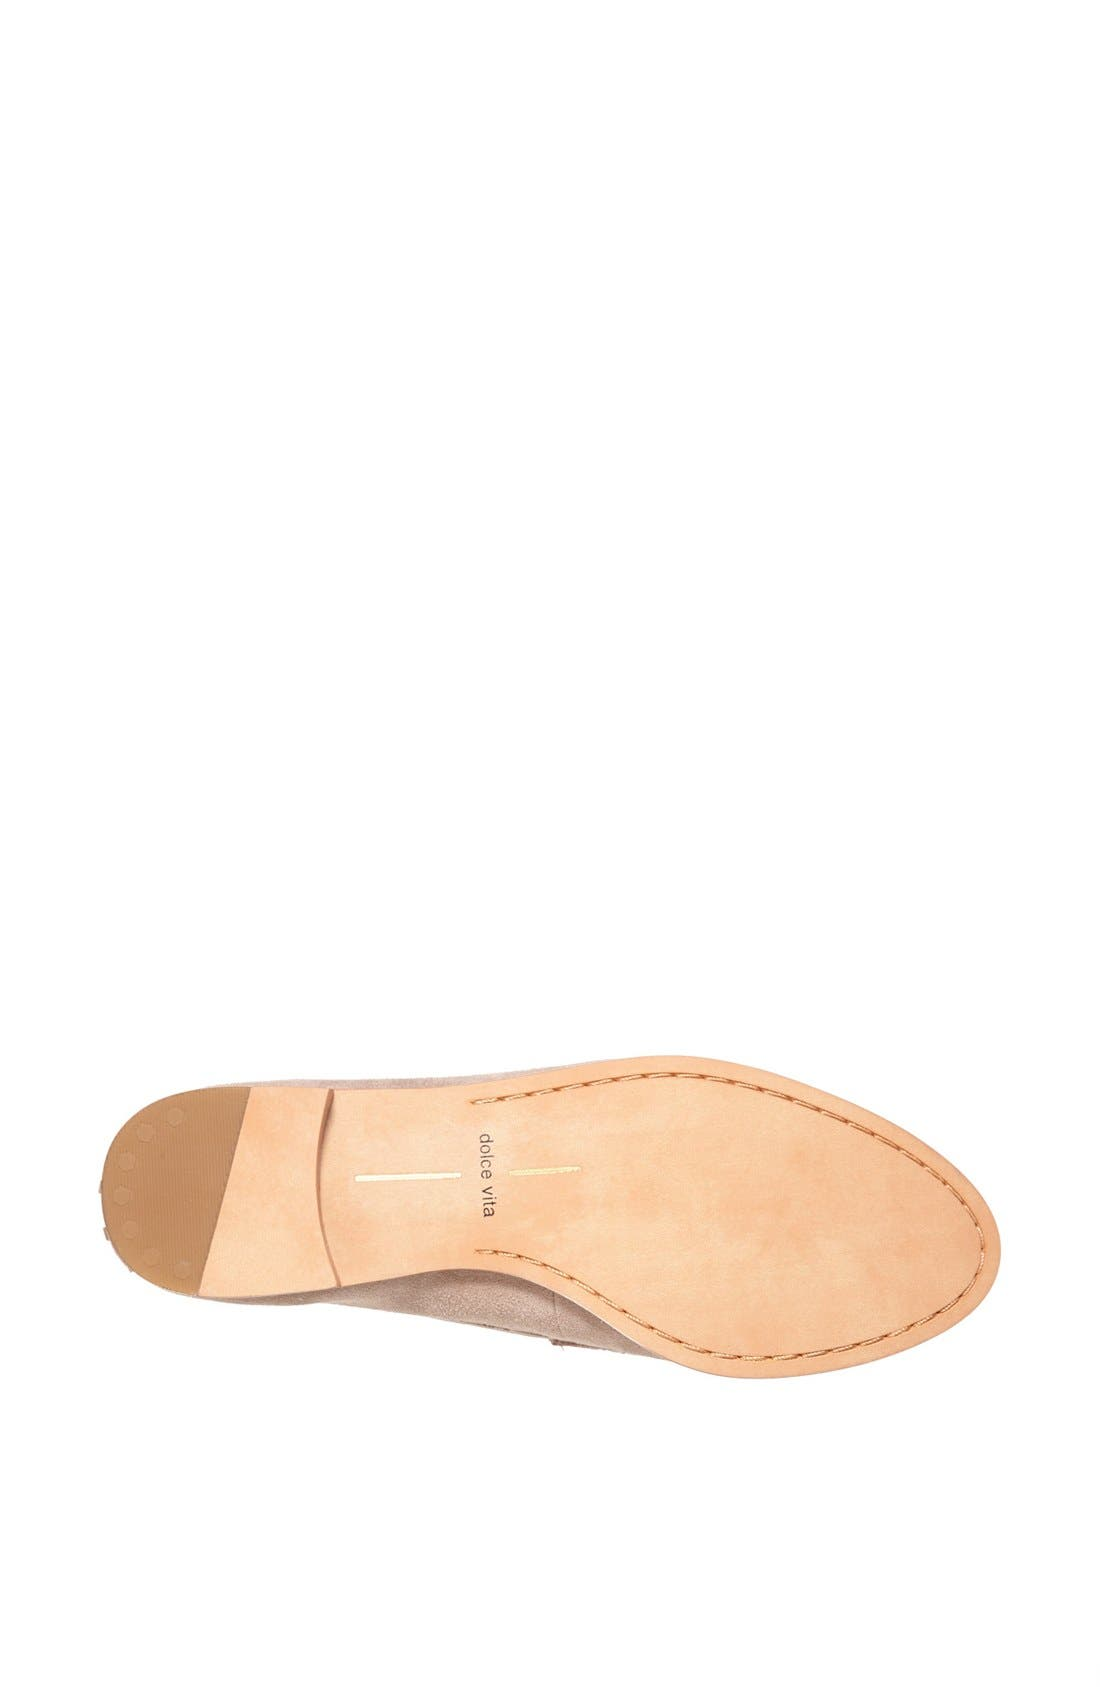 Alternate Image 4  - Dolce Vita 'Venka' Leather Flat